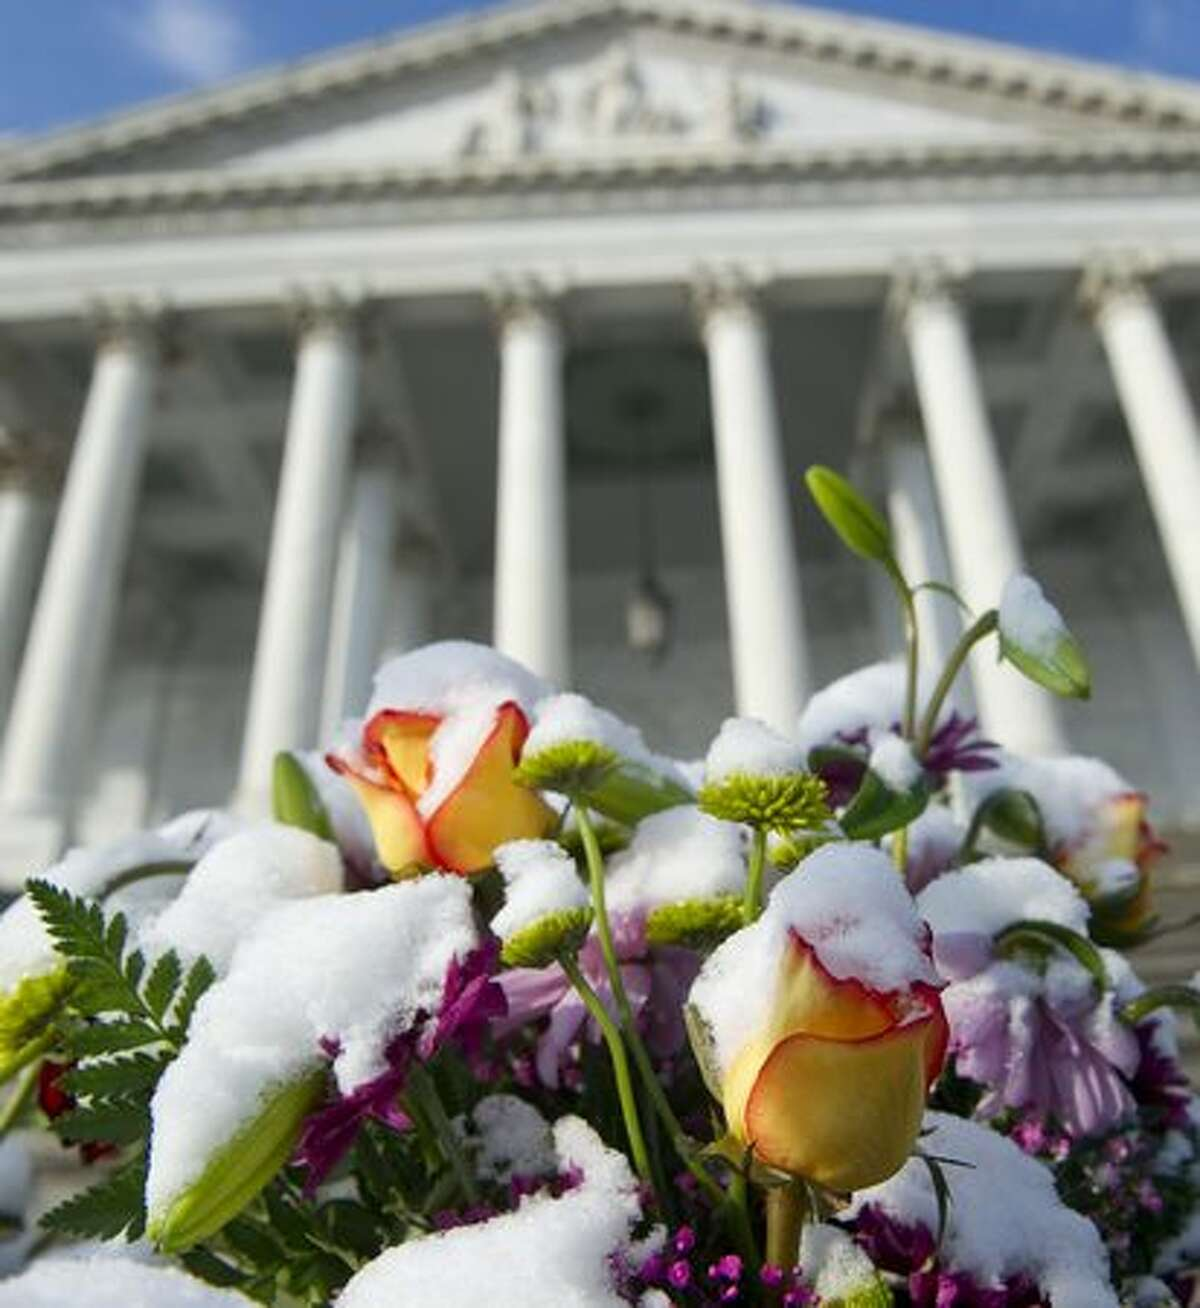 A layer of snow covers flowers left as part of a makeshift memorial on the East Front of the US Capitol in Washington, DC, Wednesday, in honor of the six people killed in the shooting in Tucson, Arizona, that also severely wounded Arizona Representative Gabrielle Giffords. US President Barack Obama is scheduled to travel to Tucson later today to attend a memorial service.